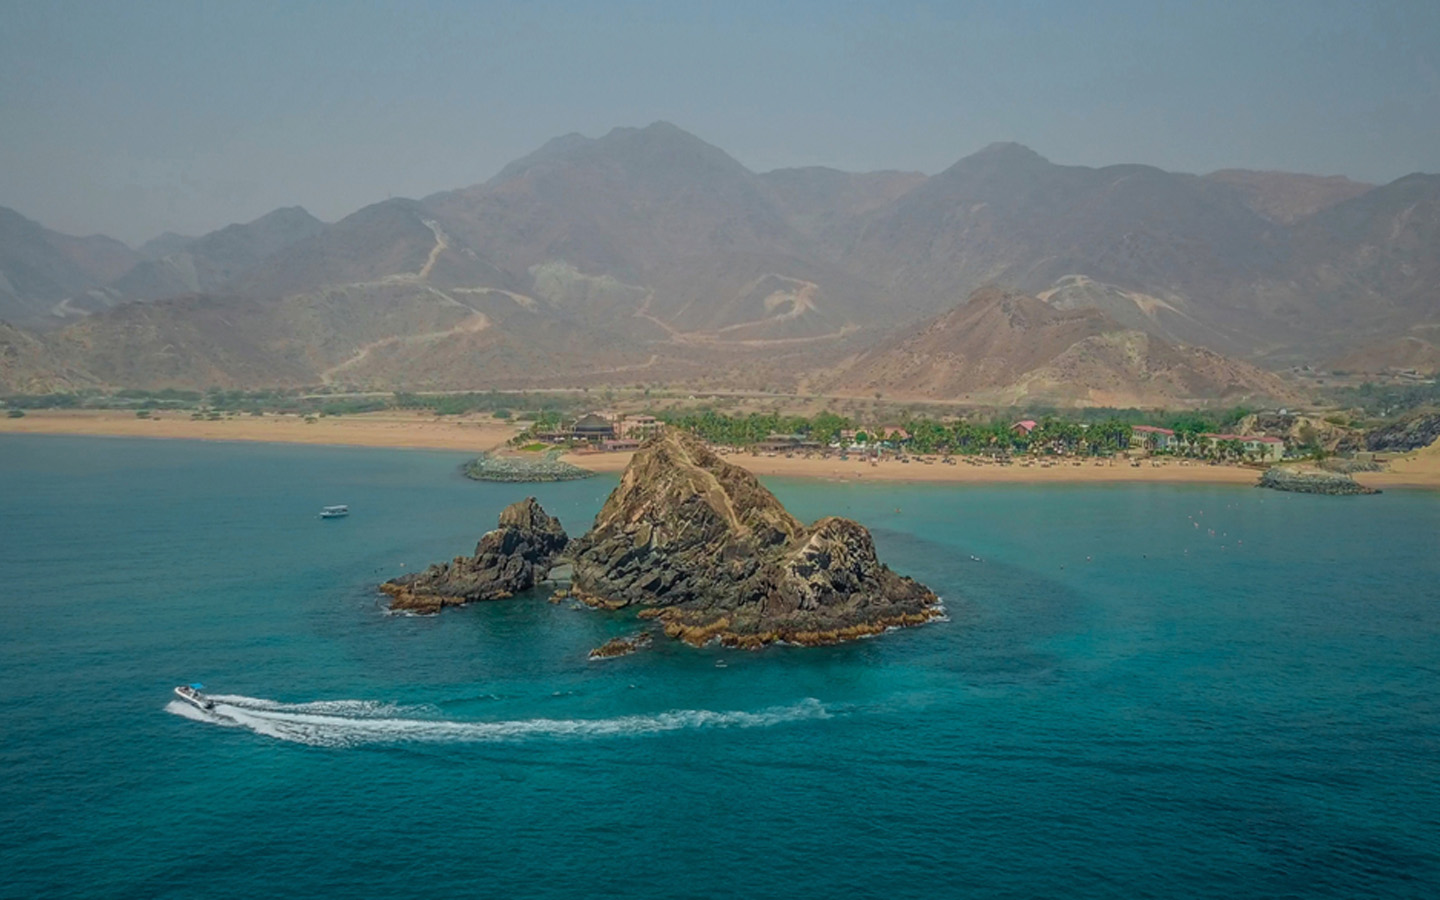 Fujairah has some amazing spots for snorkeling and diving